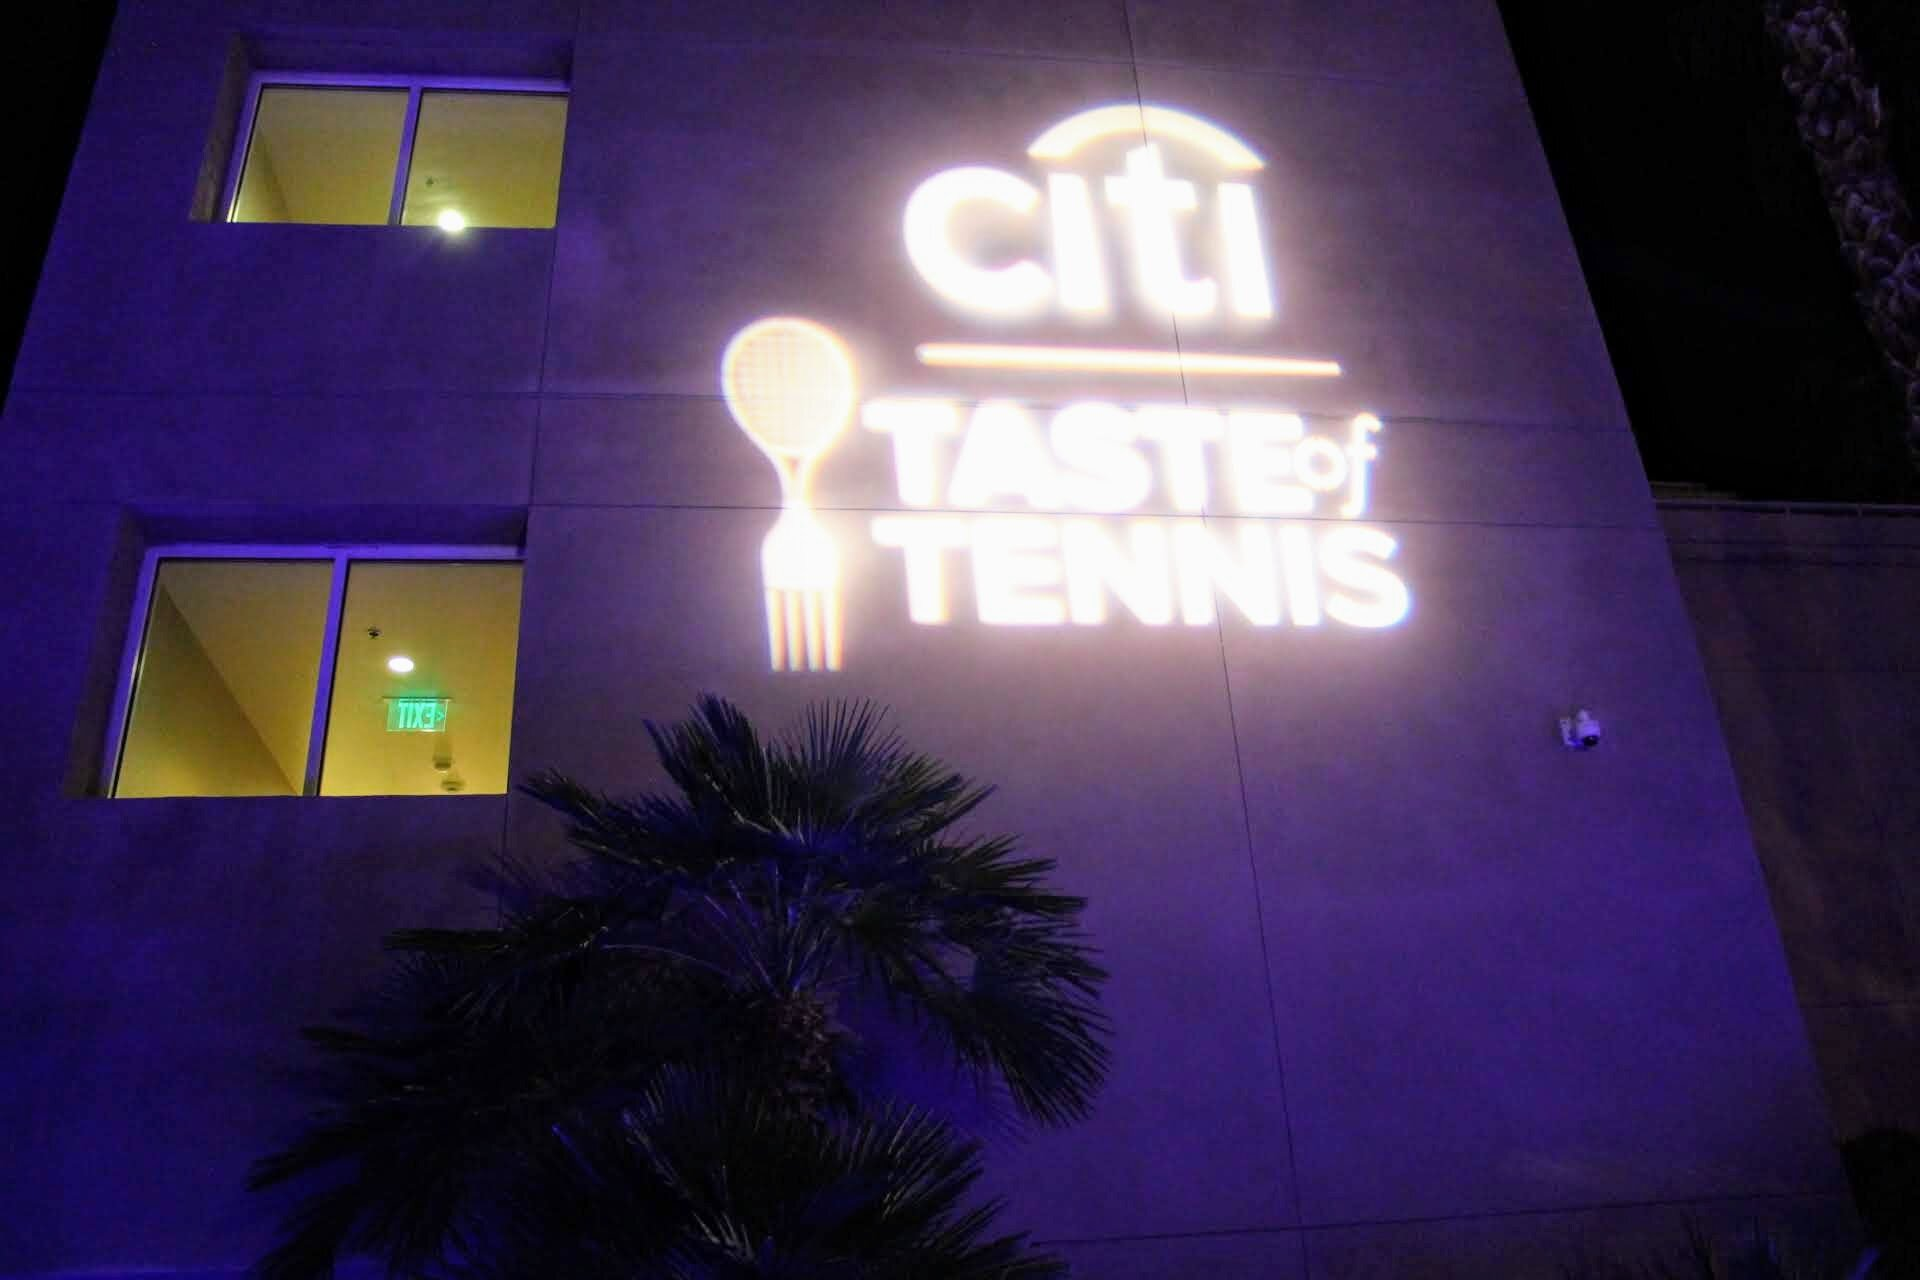 Welcome to the Citi Taste of Tennis 2019!